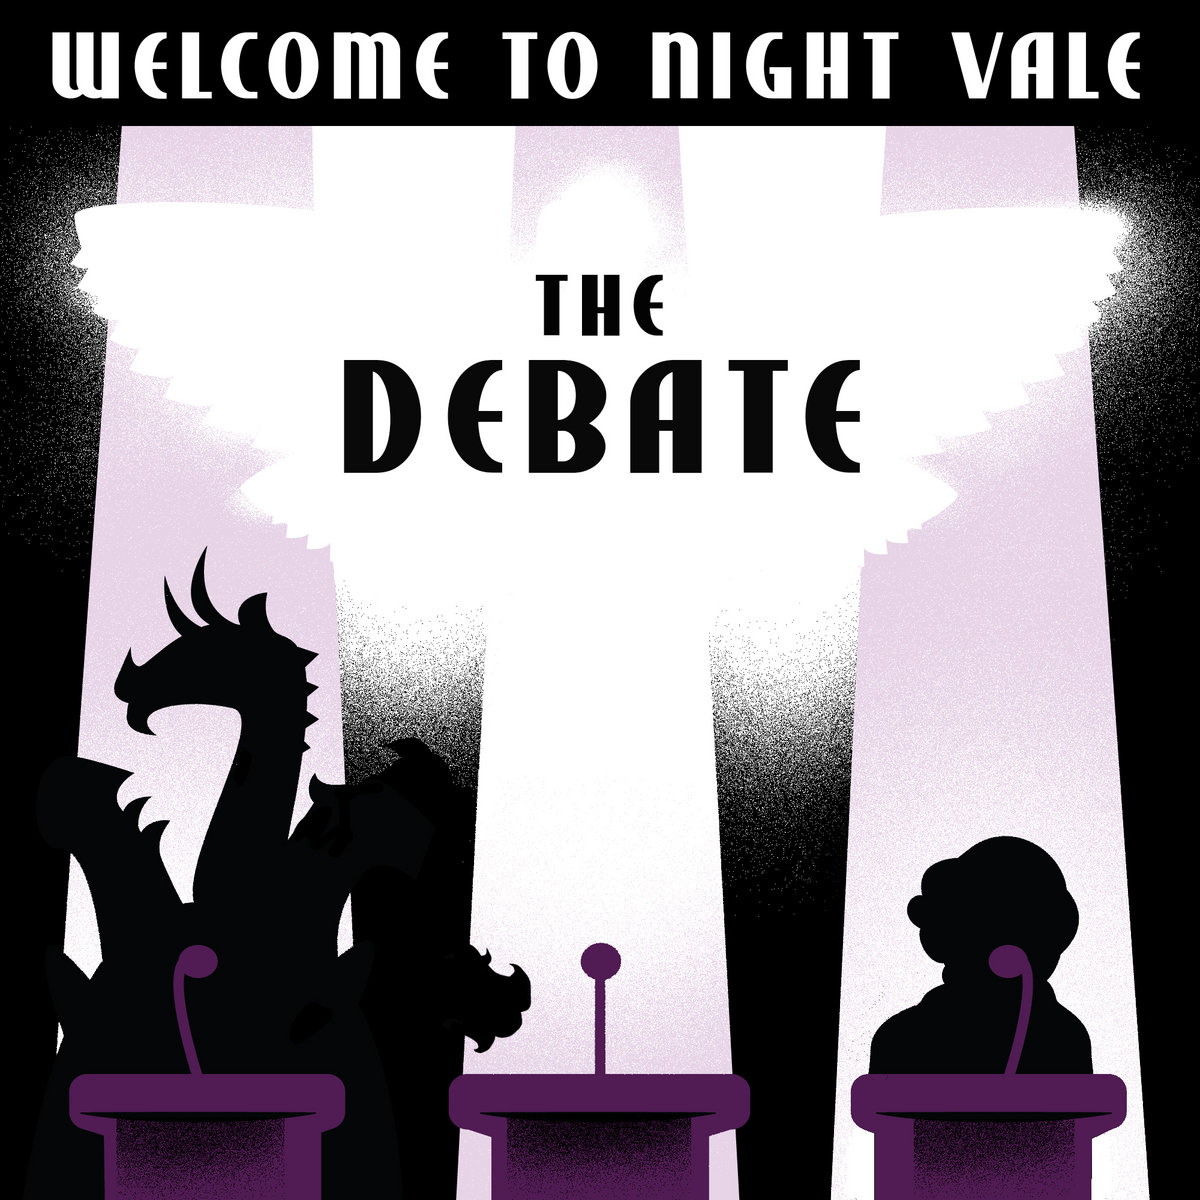 The Debate Live At Roulette Welcome To Night Vale -> Imagem De Debate